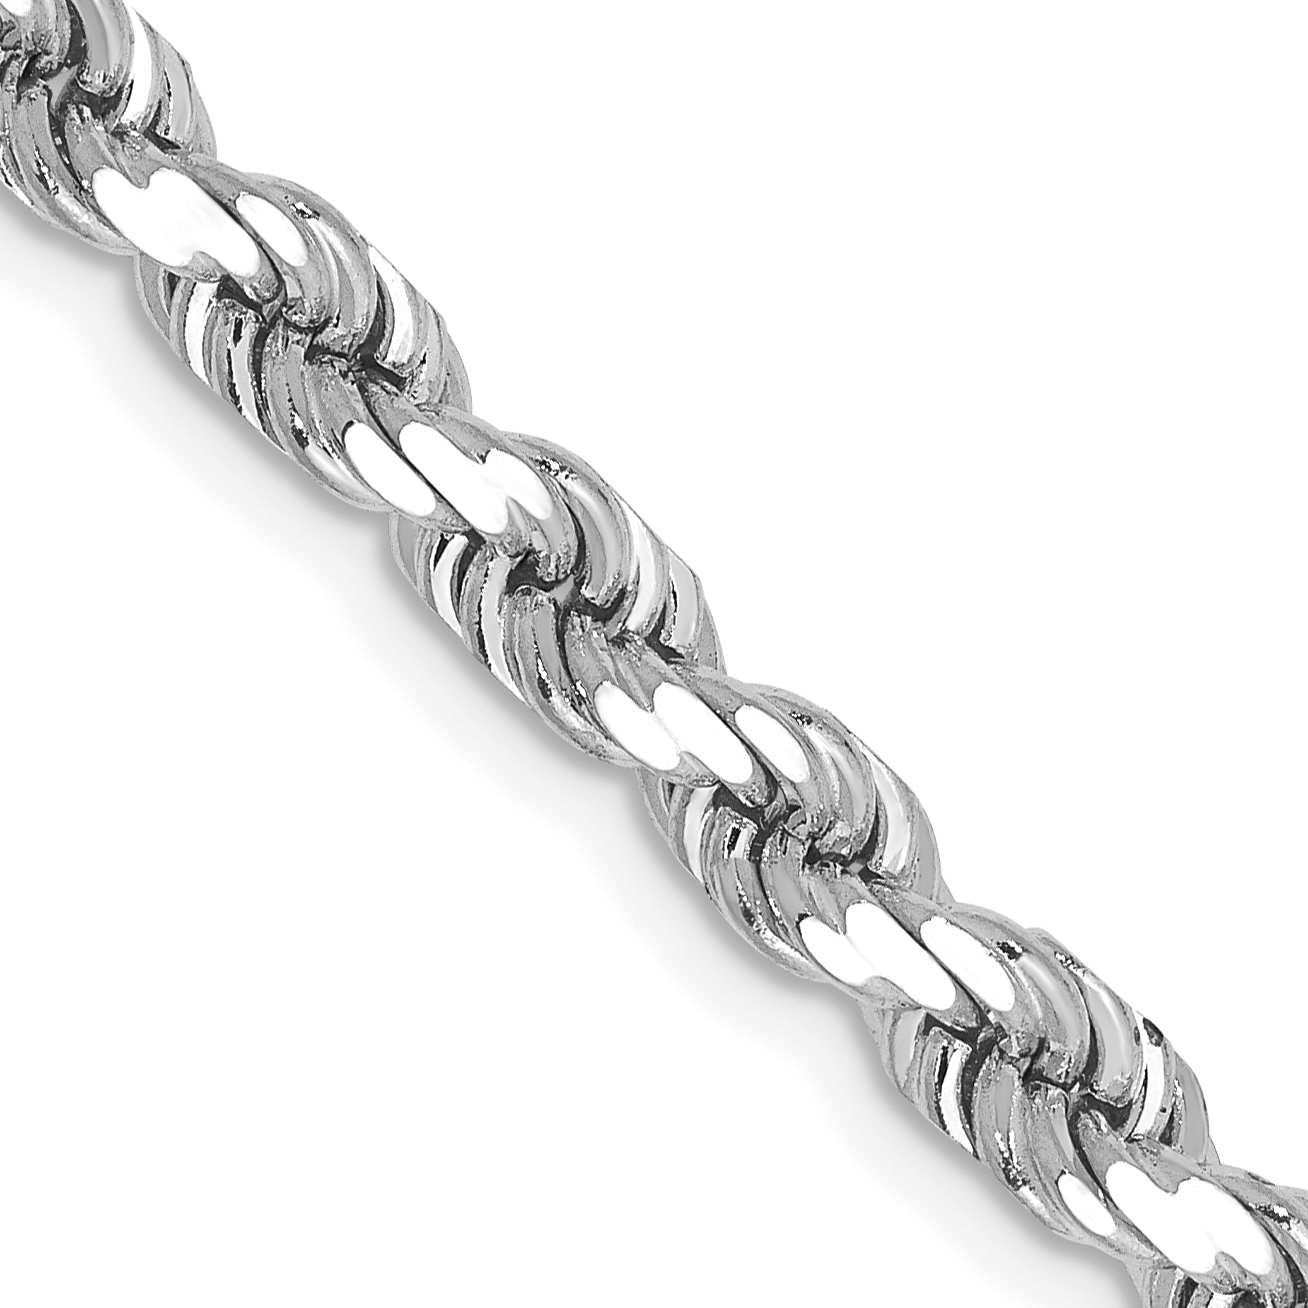 14k White Gold 5mm D/C Rope Chain. Weight: 32.95,  Length: 18